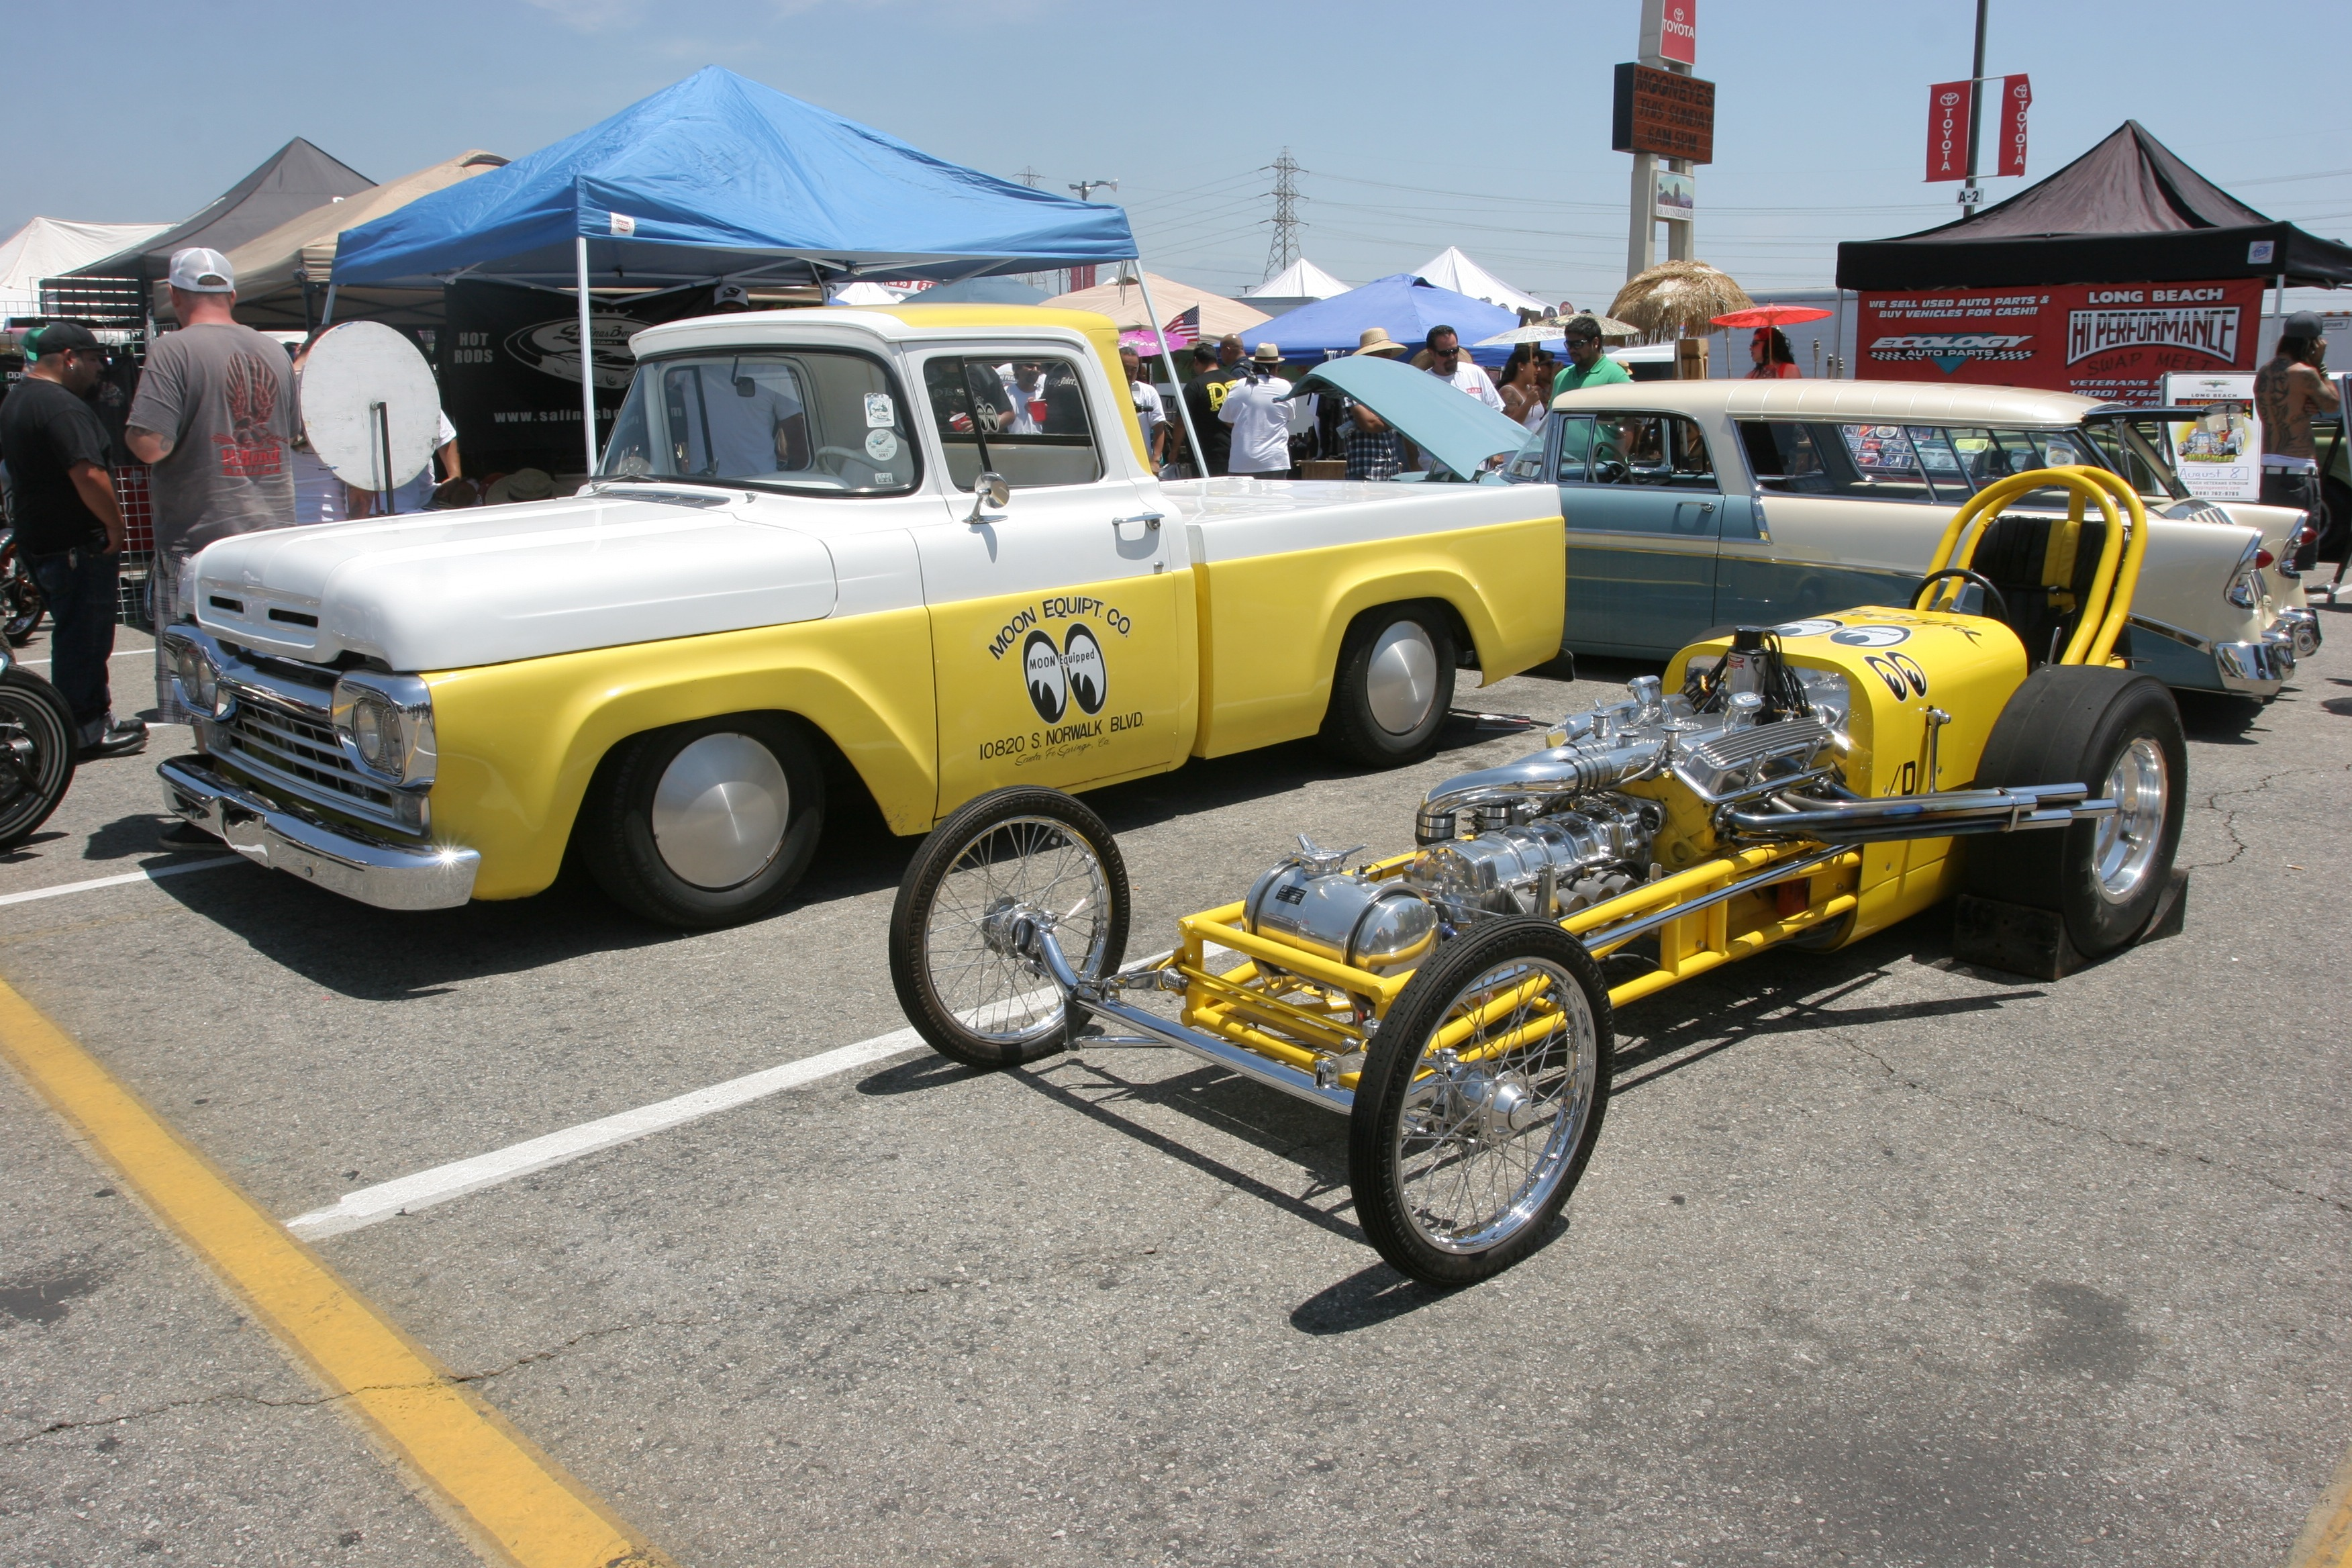 Mooneyes A/Dragster   Cars, Wheels and Auto racing